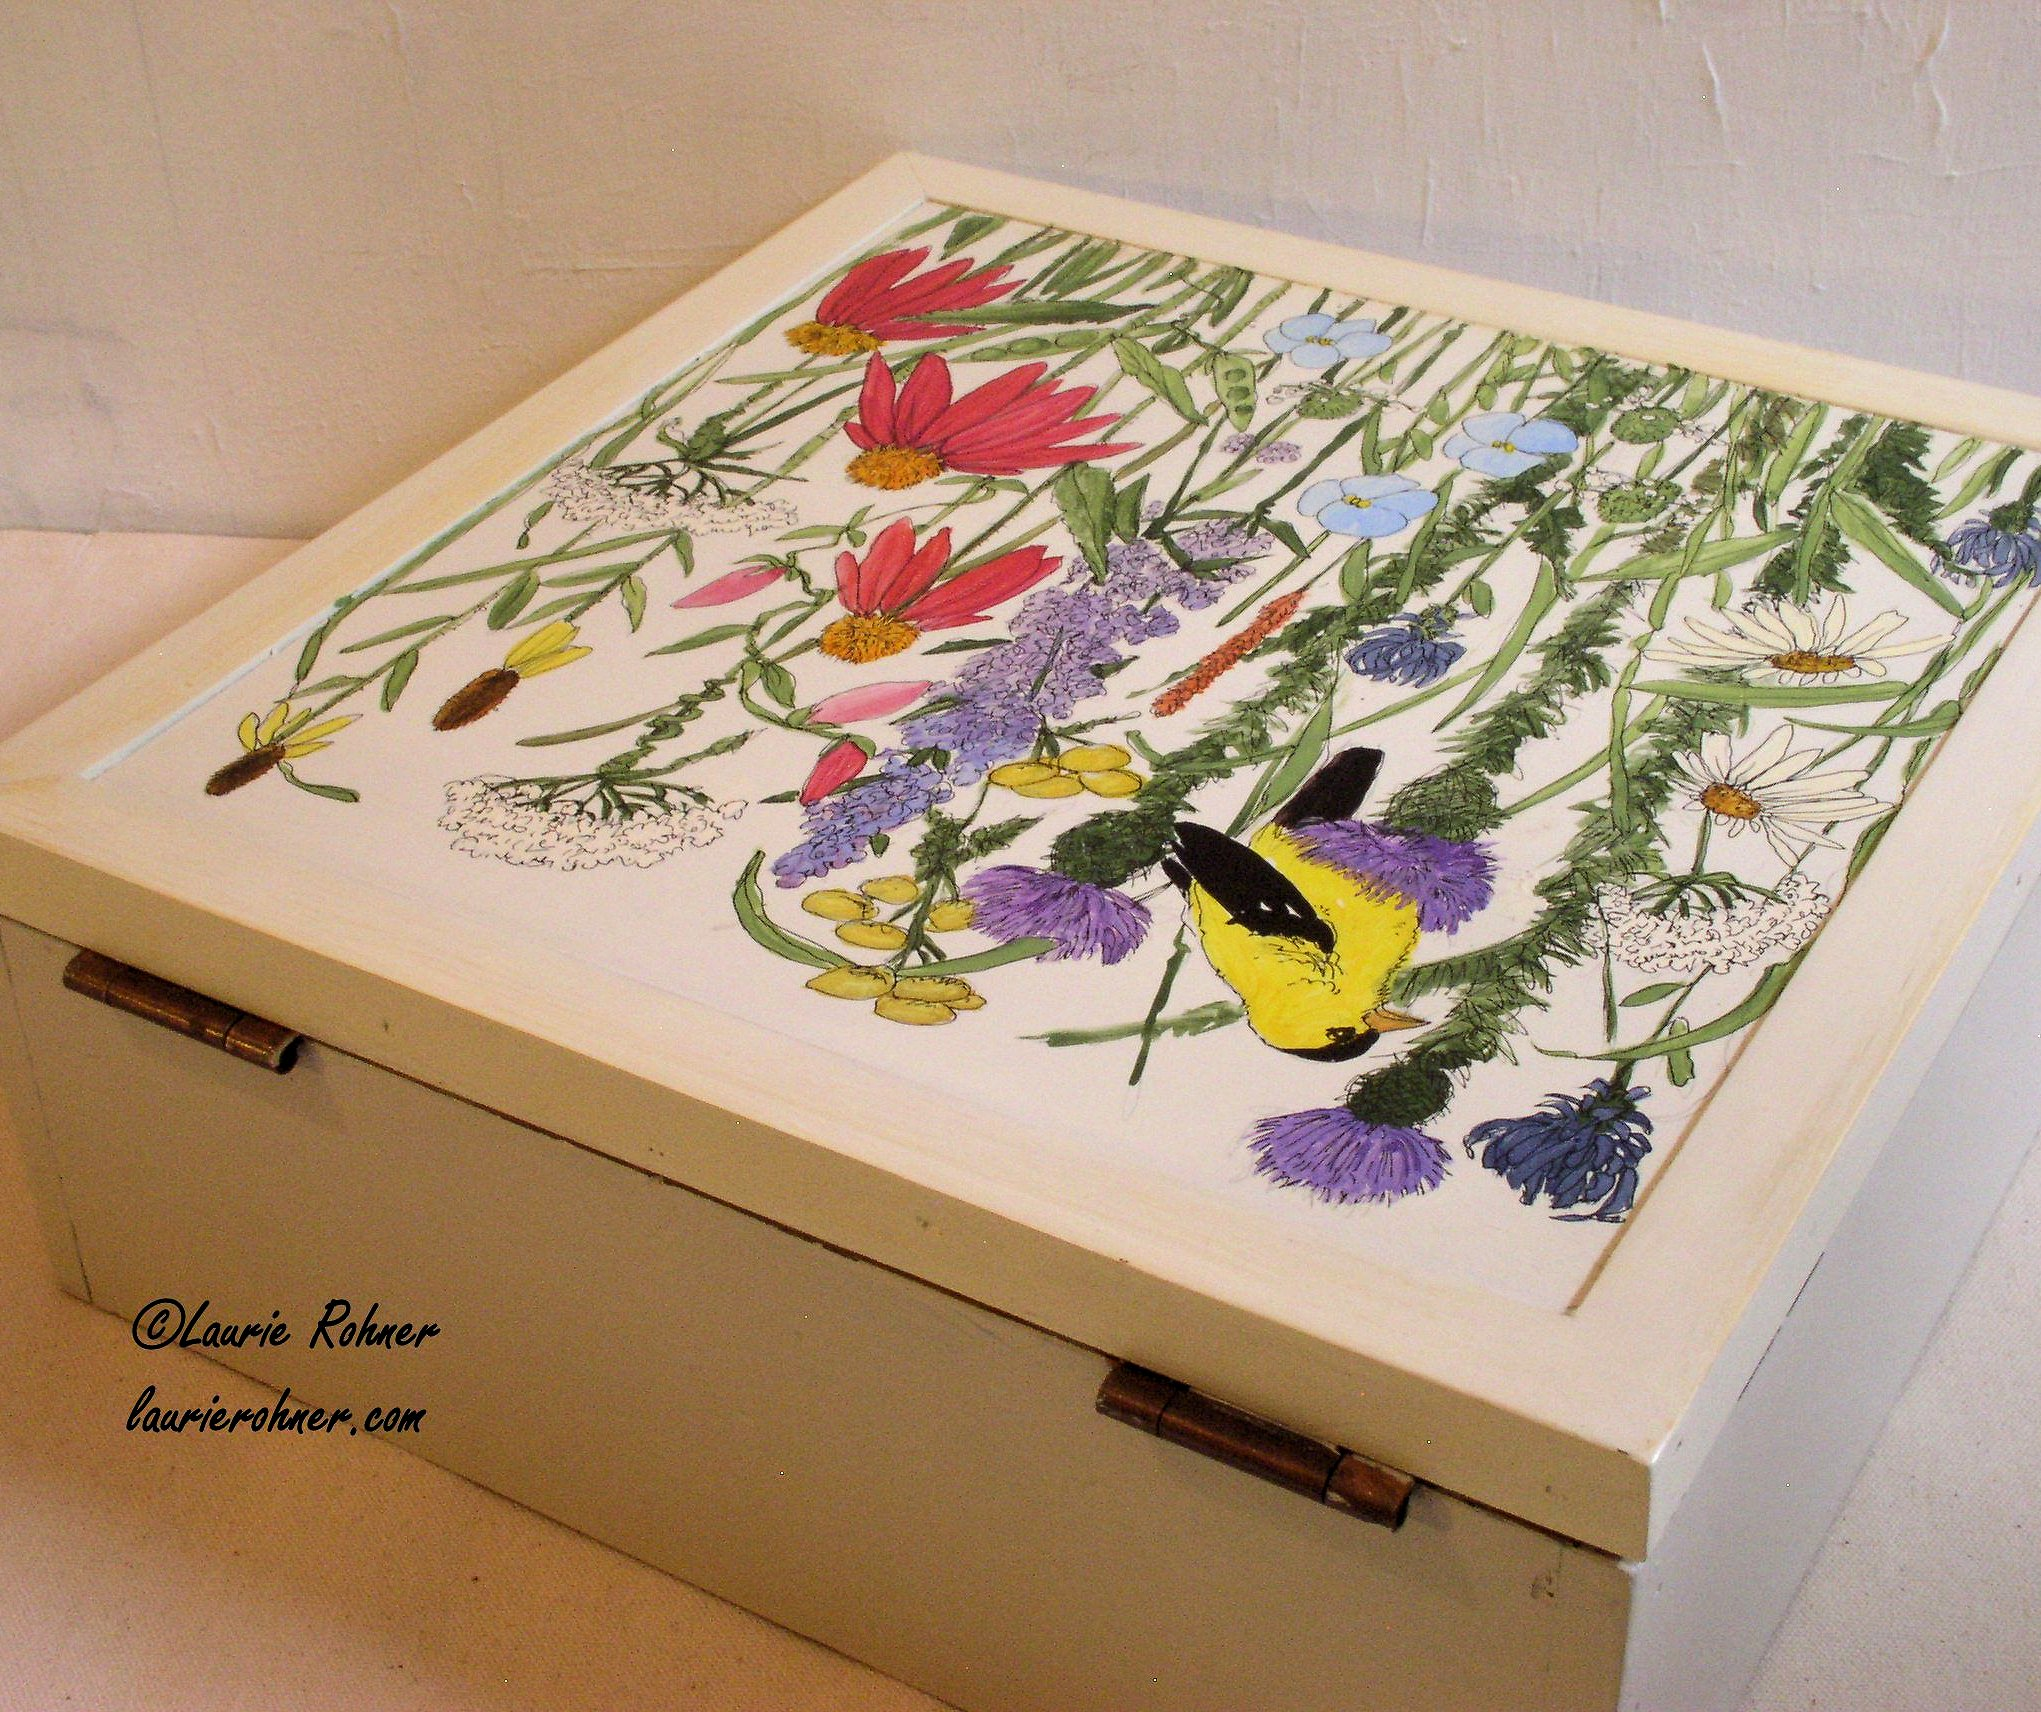 Botanic Soldes Sold Botanical Painted Furniture Nature Box Cottage